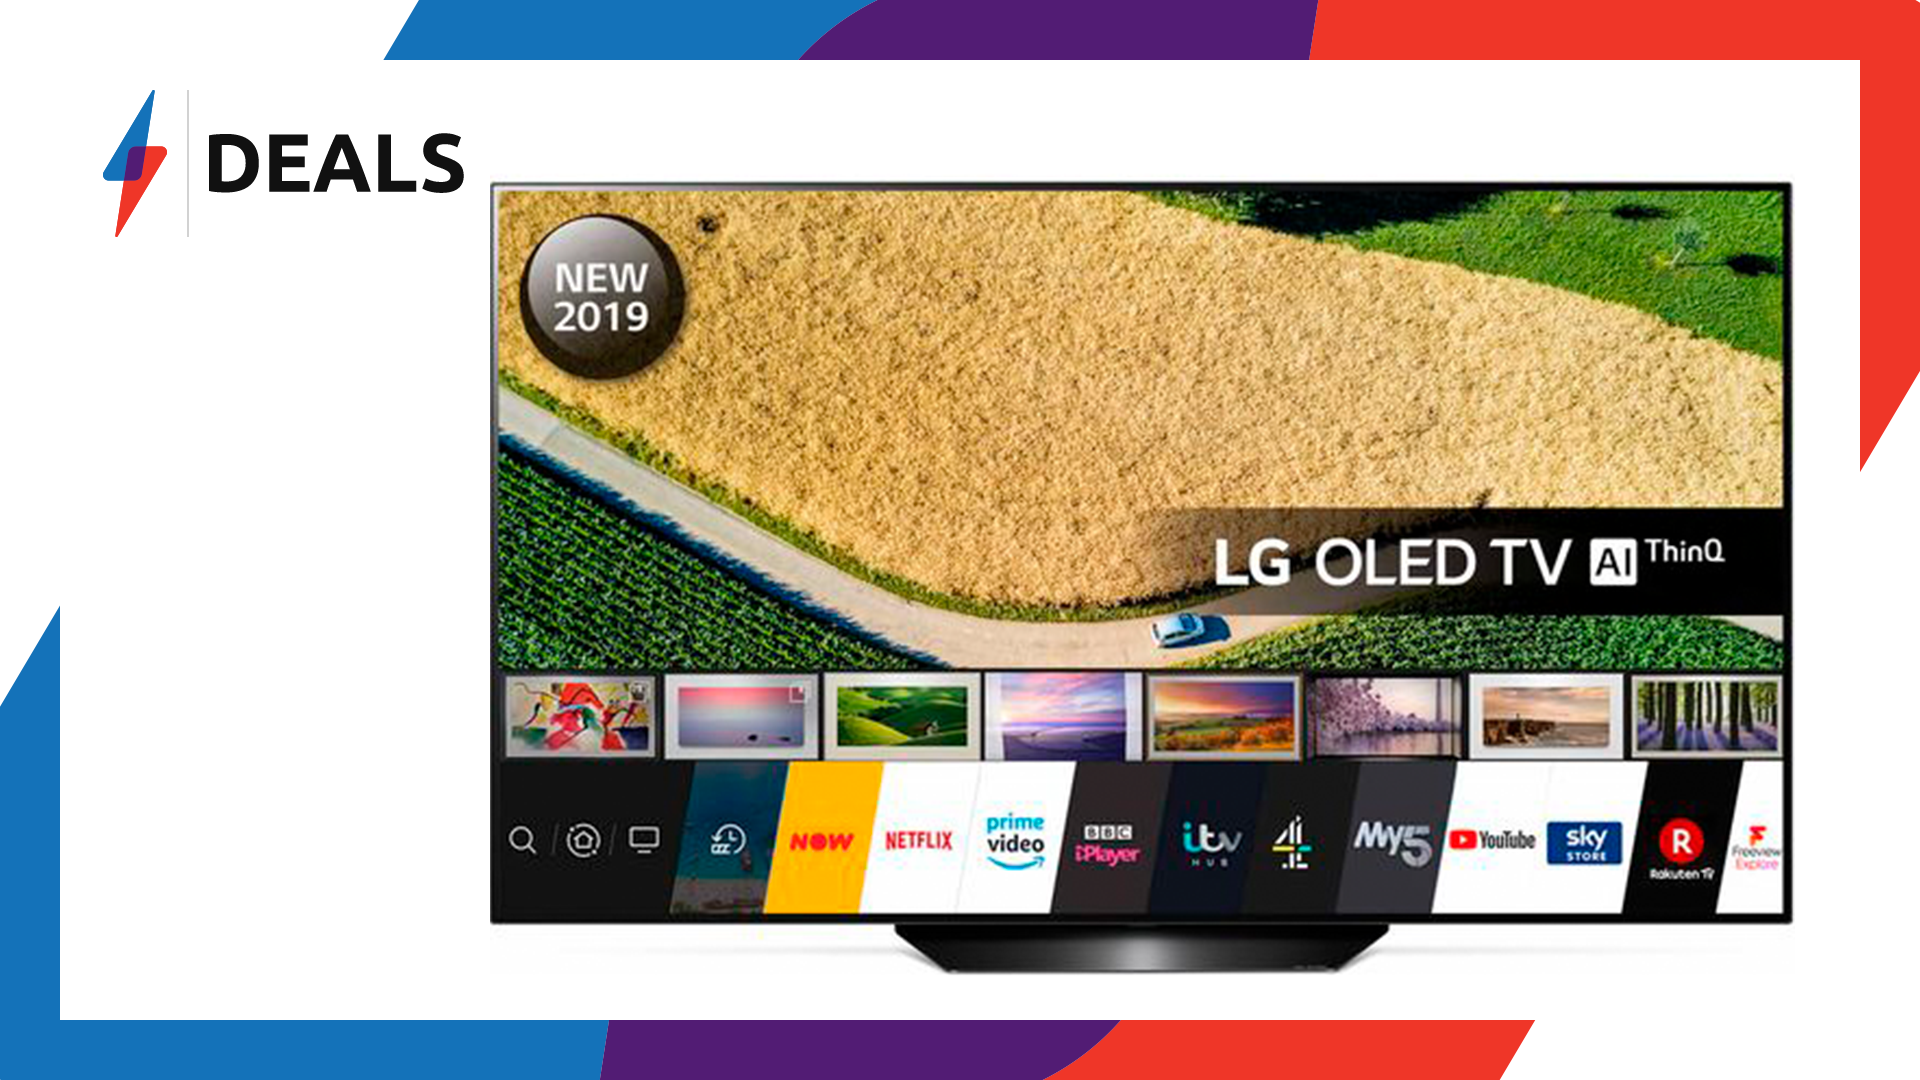 With over £700 off, this 65″ LG OLED TV is at one of its lowest prices yet